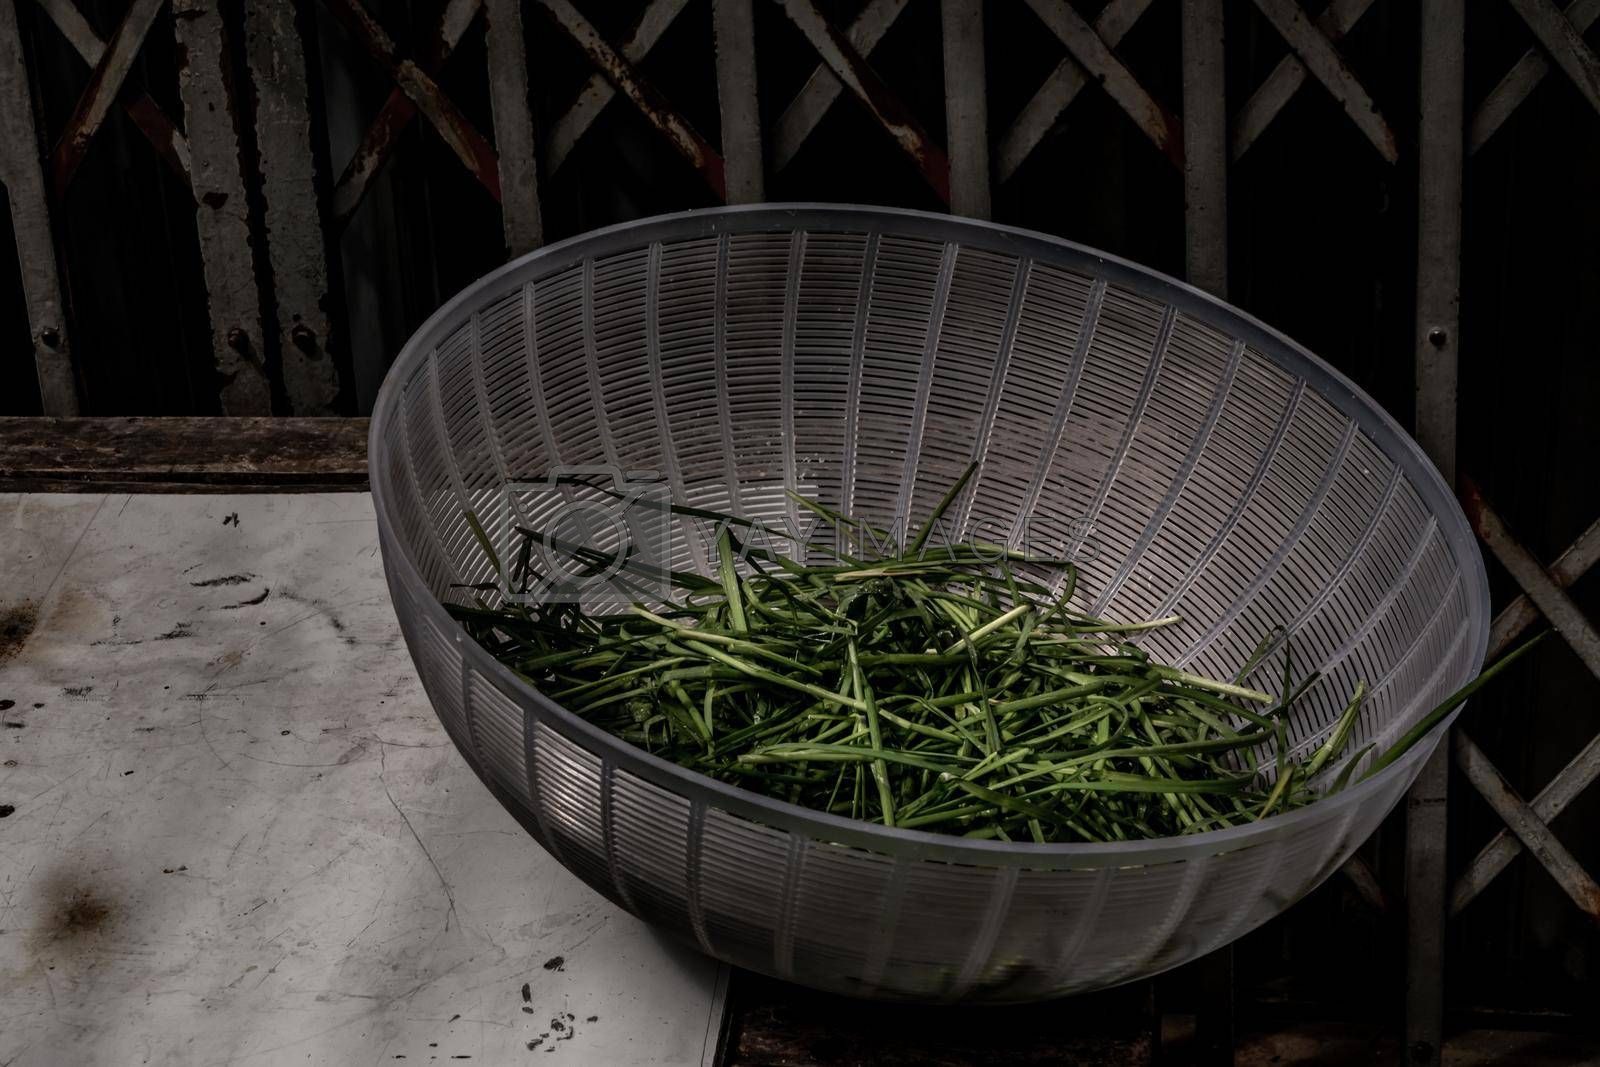 Spring onion in Dish cover on table in front of ancient iron gate. Vegetable.